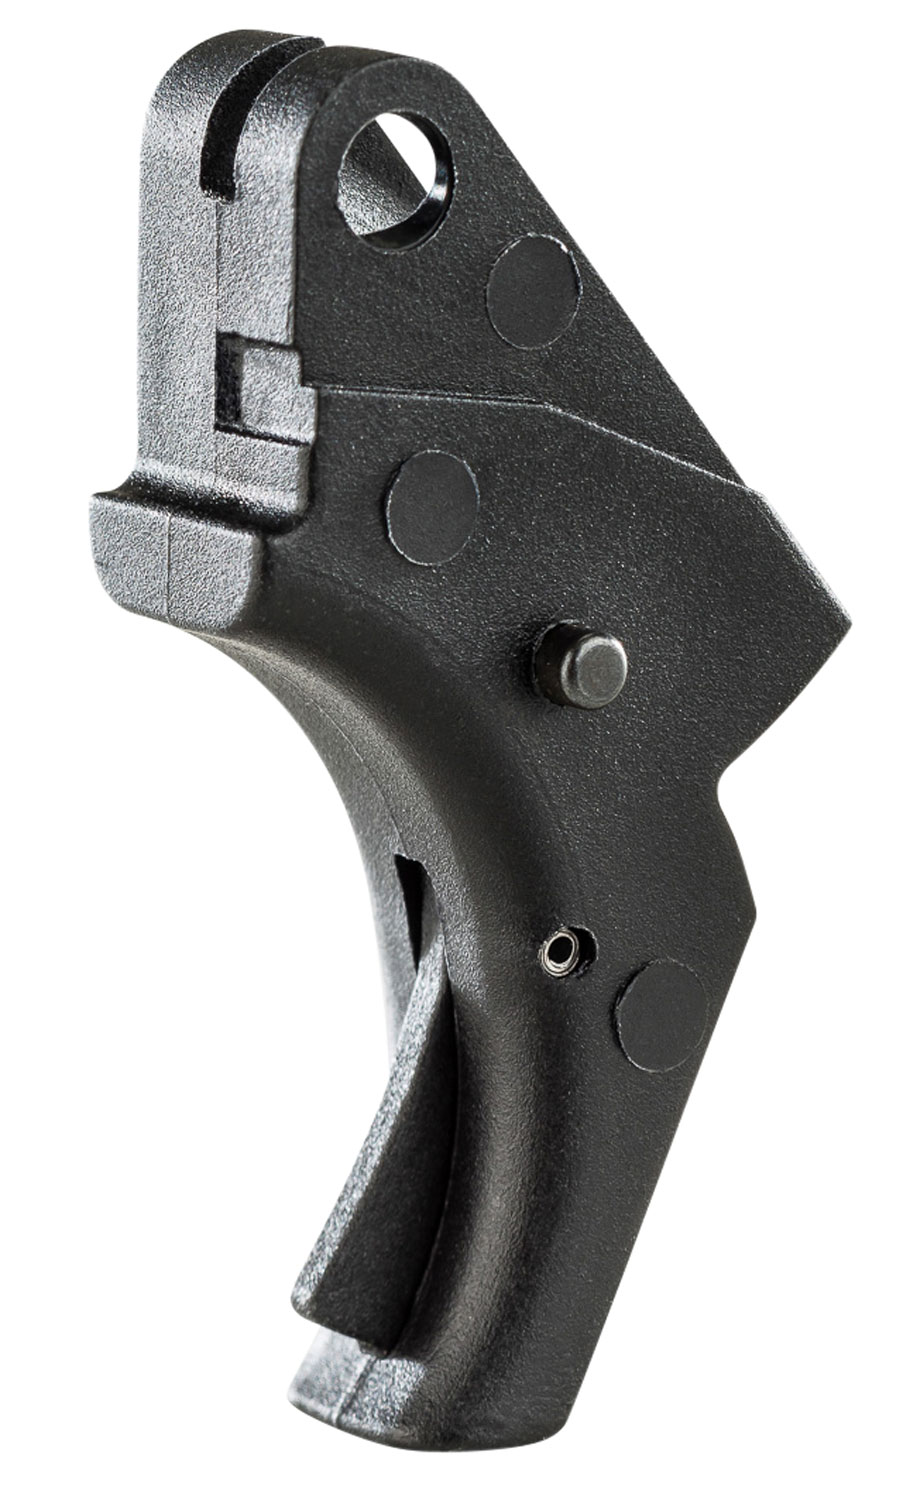 APEX TACTICAL SPECIALTIES 100126 Action Enhancement Duty/Carry Kit S&W M&P 2.0 Enhancement Drop-in 5-5.50 lbs